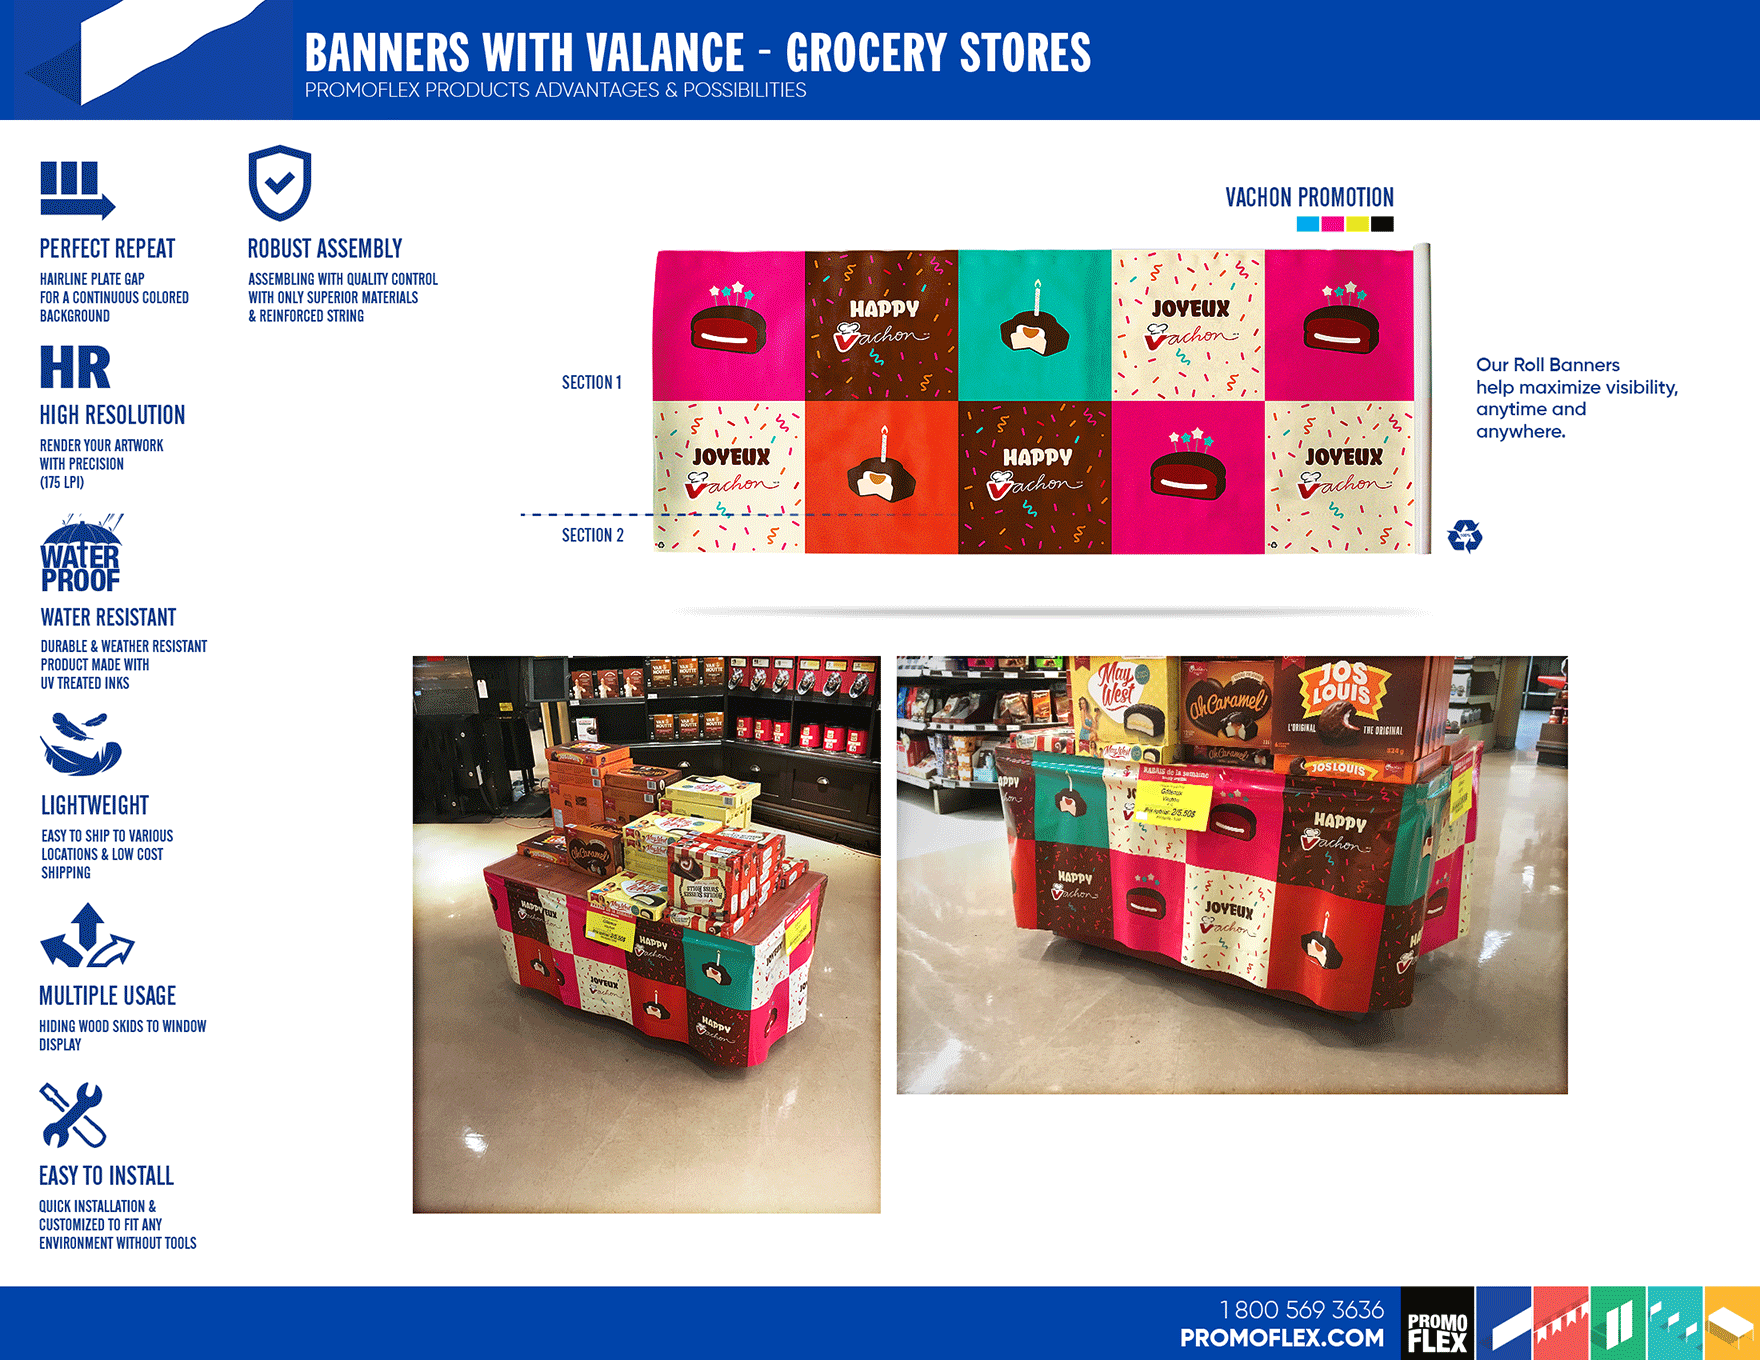 banners-with-valance-grocery-stores-en-4n.png (493 KB)